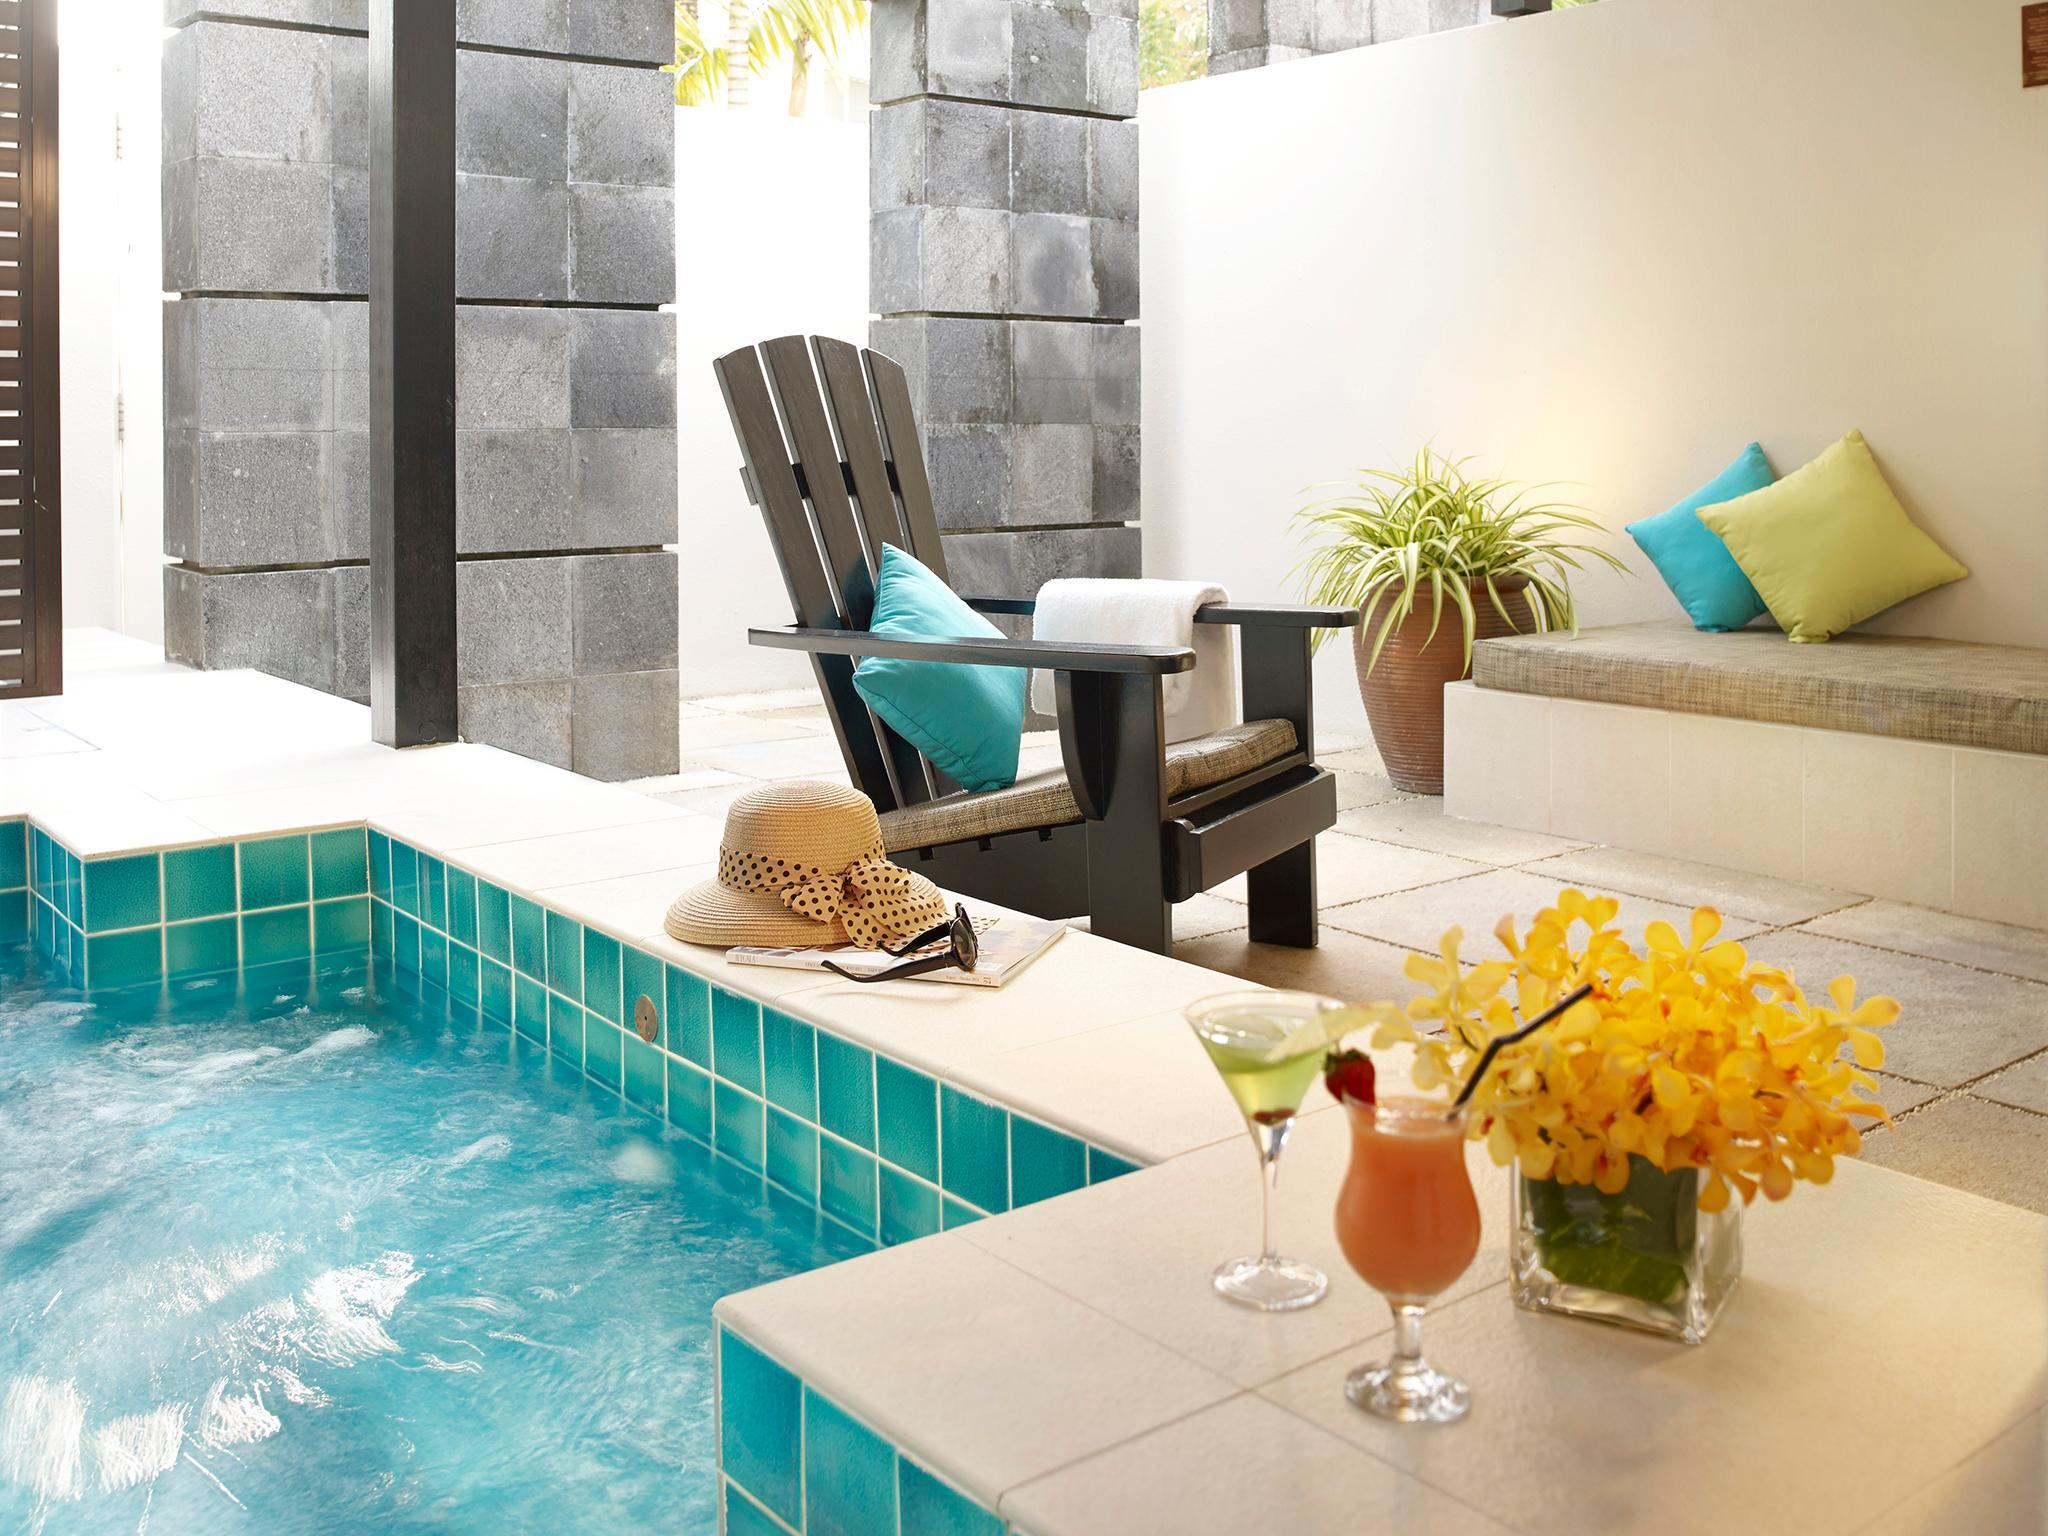 Binnenplaats Suite met eigen jacuzzi (Courtyard Suite with Private Jacuzzi)